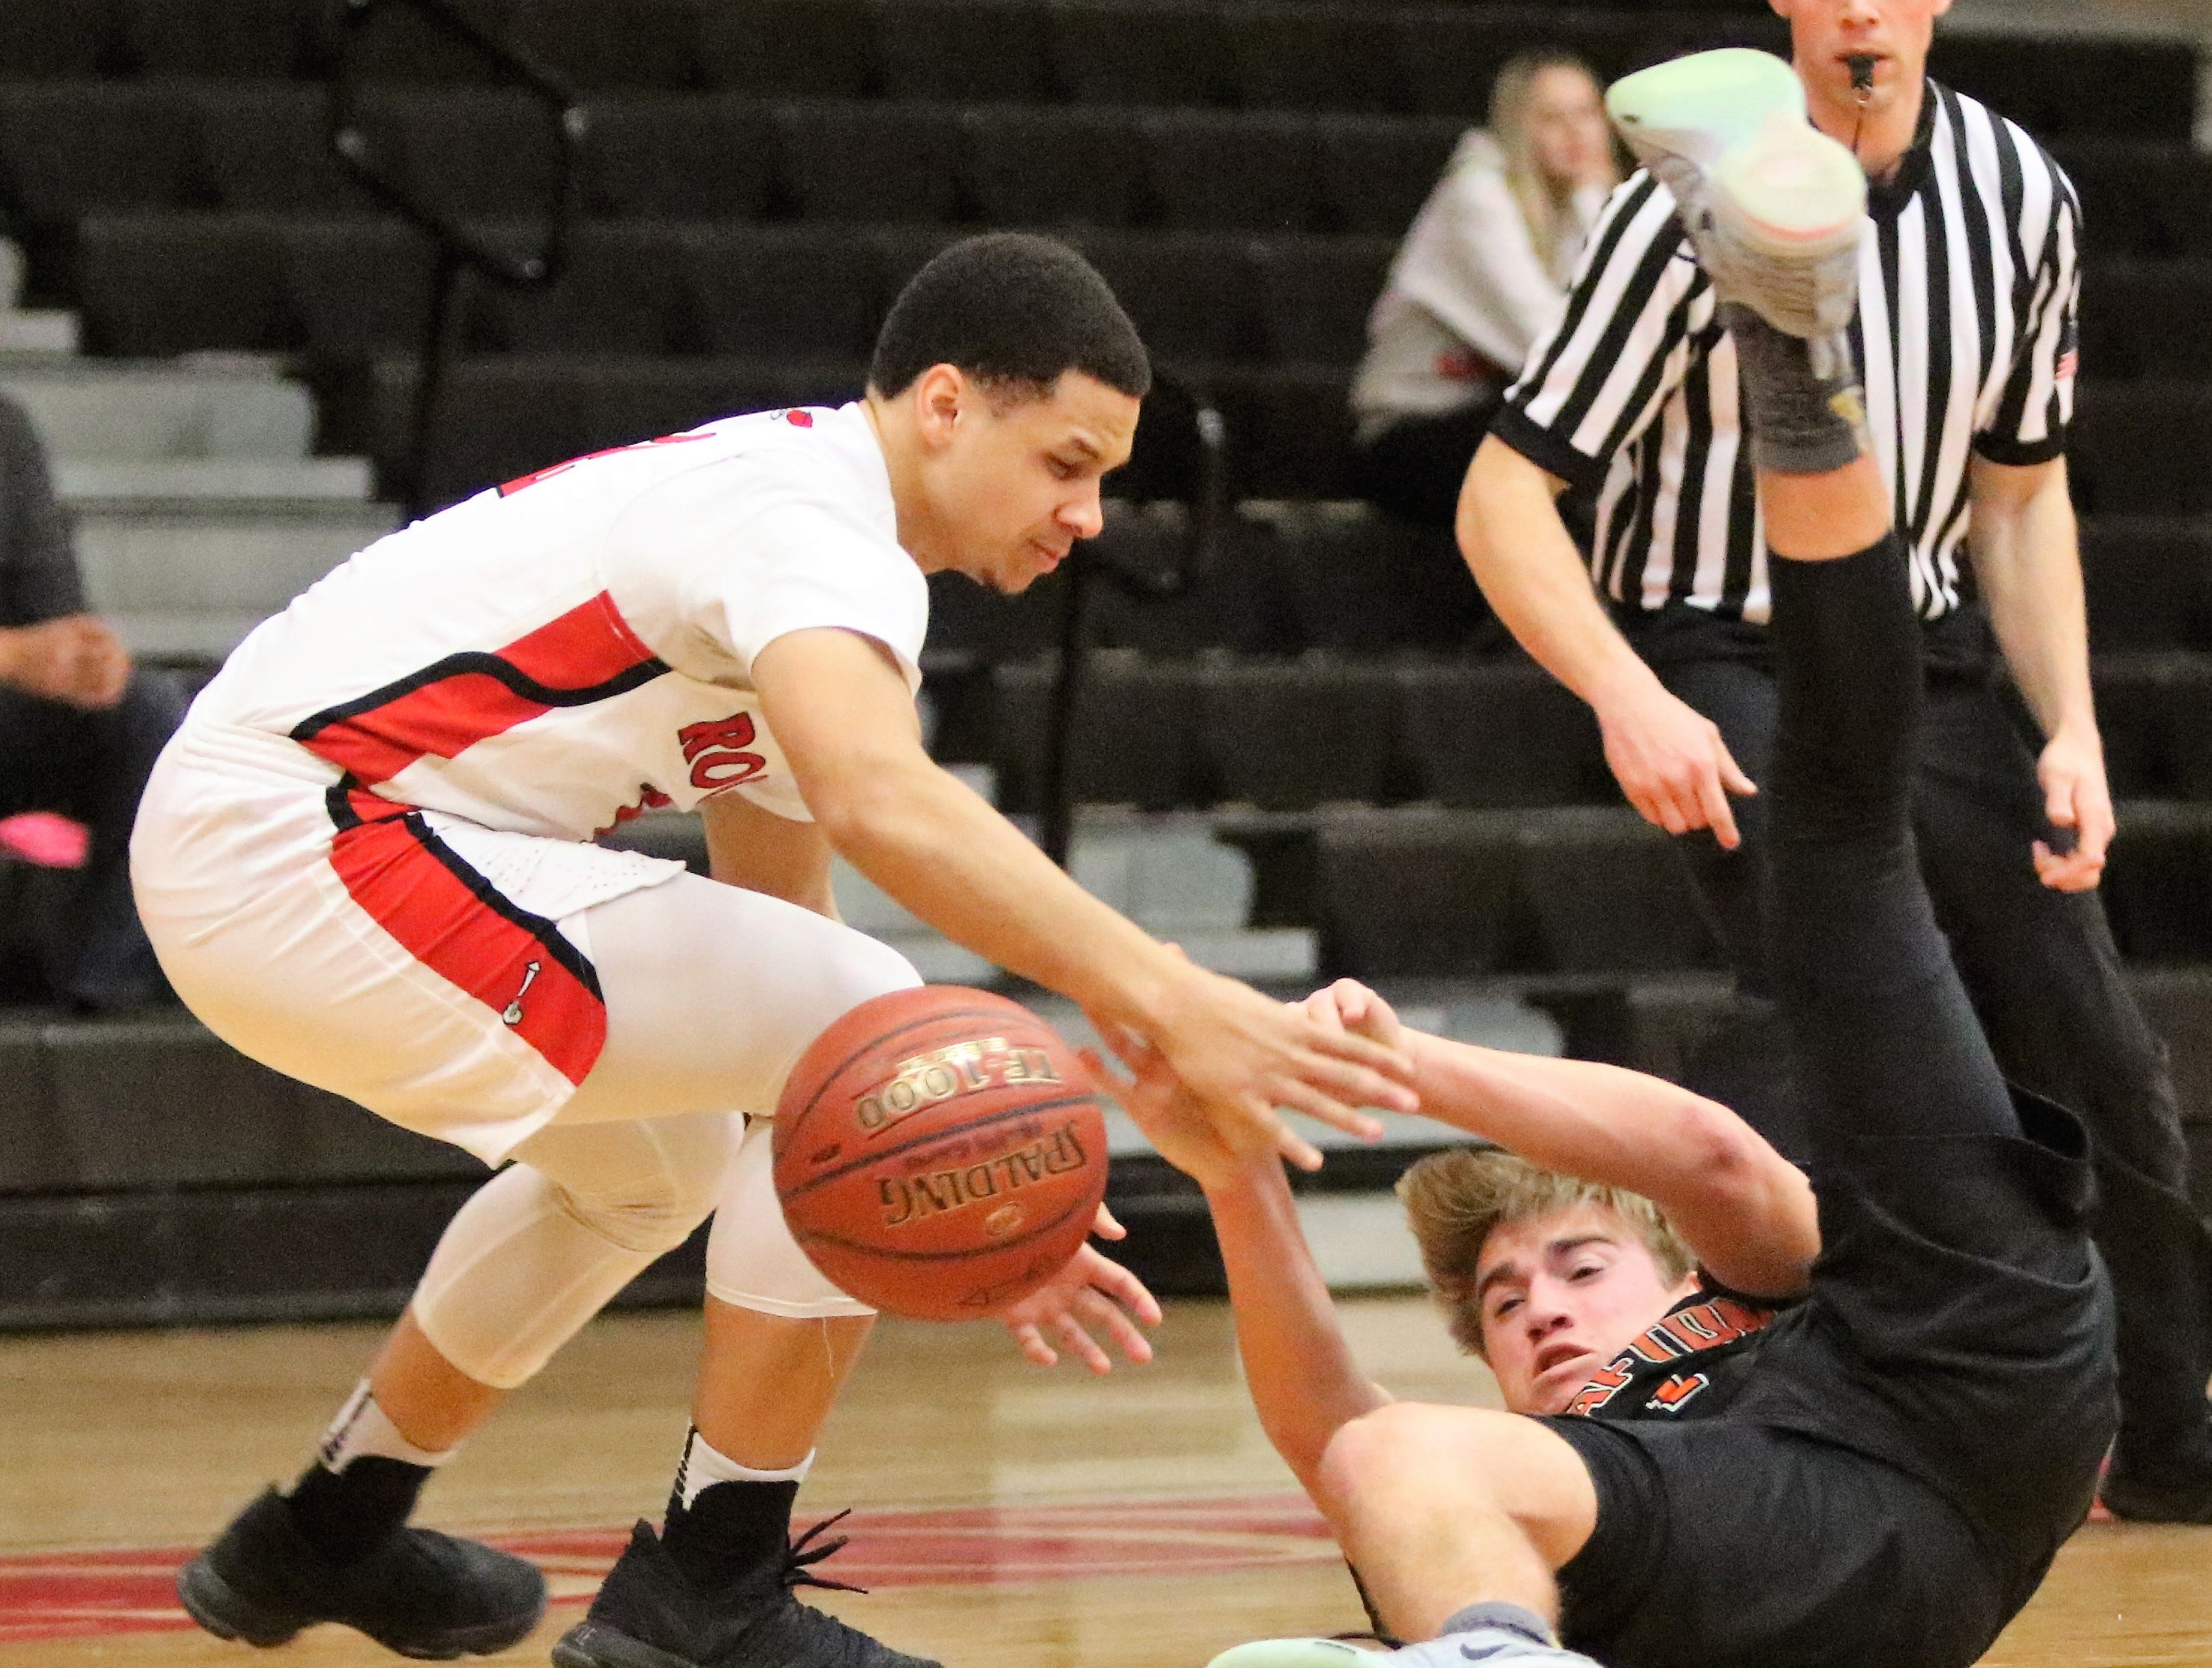 South Milwaukee forward Dez Fitzpatrick battles for a loose ball with Grafton guard Brady Ward during a game on Jan. 22, 2019.